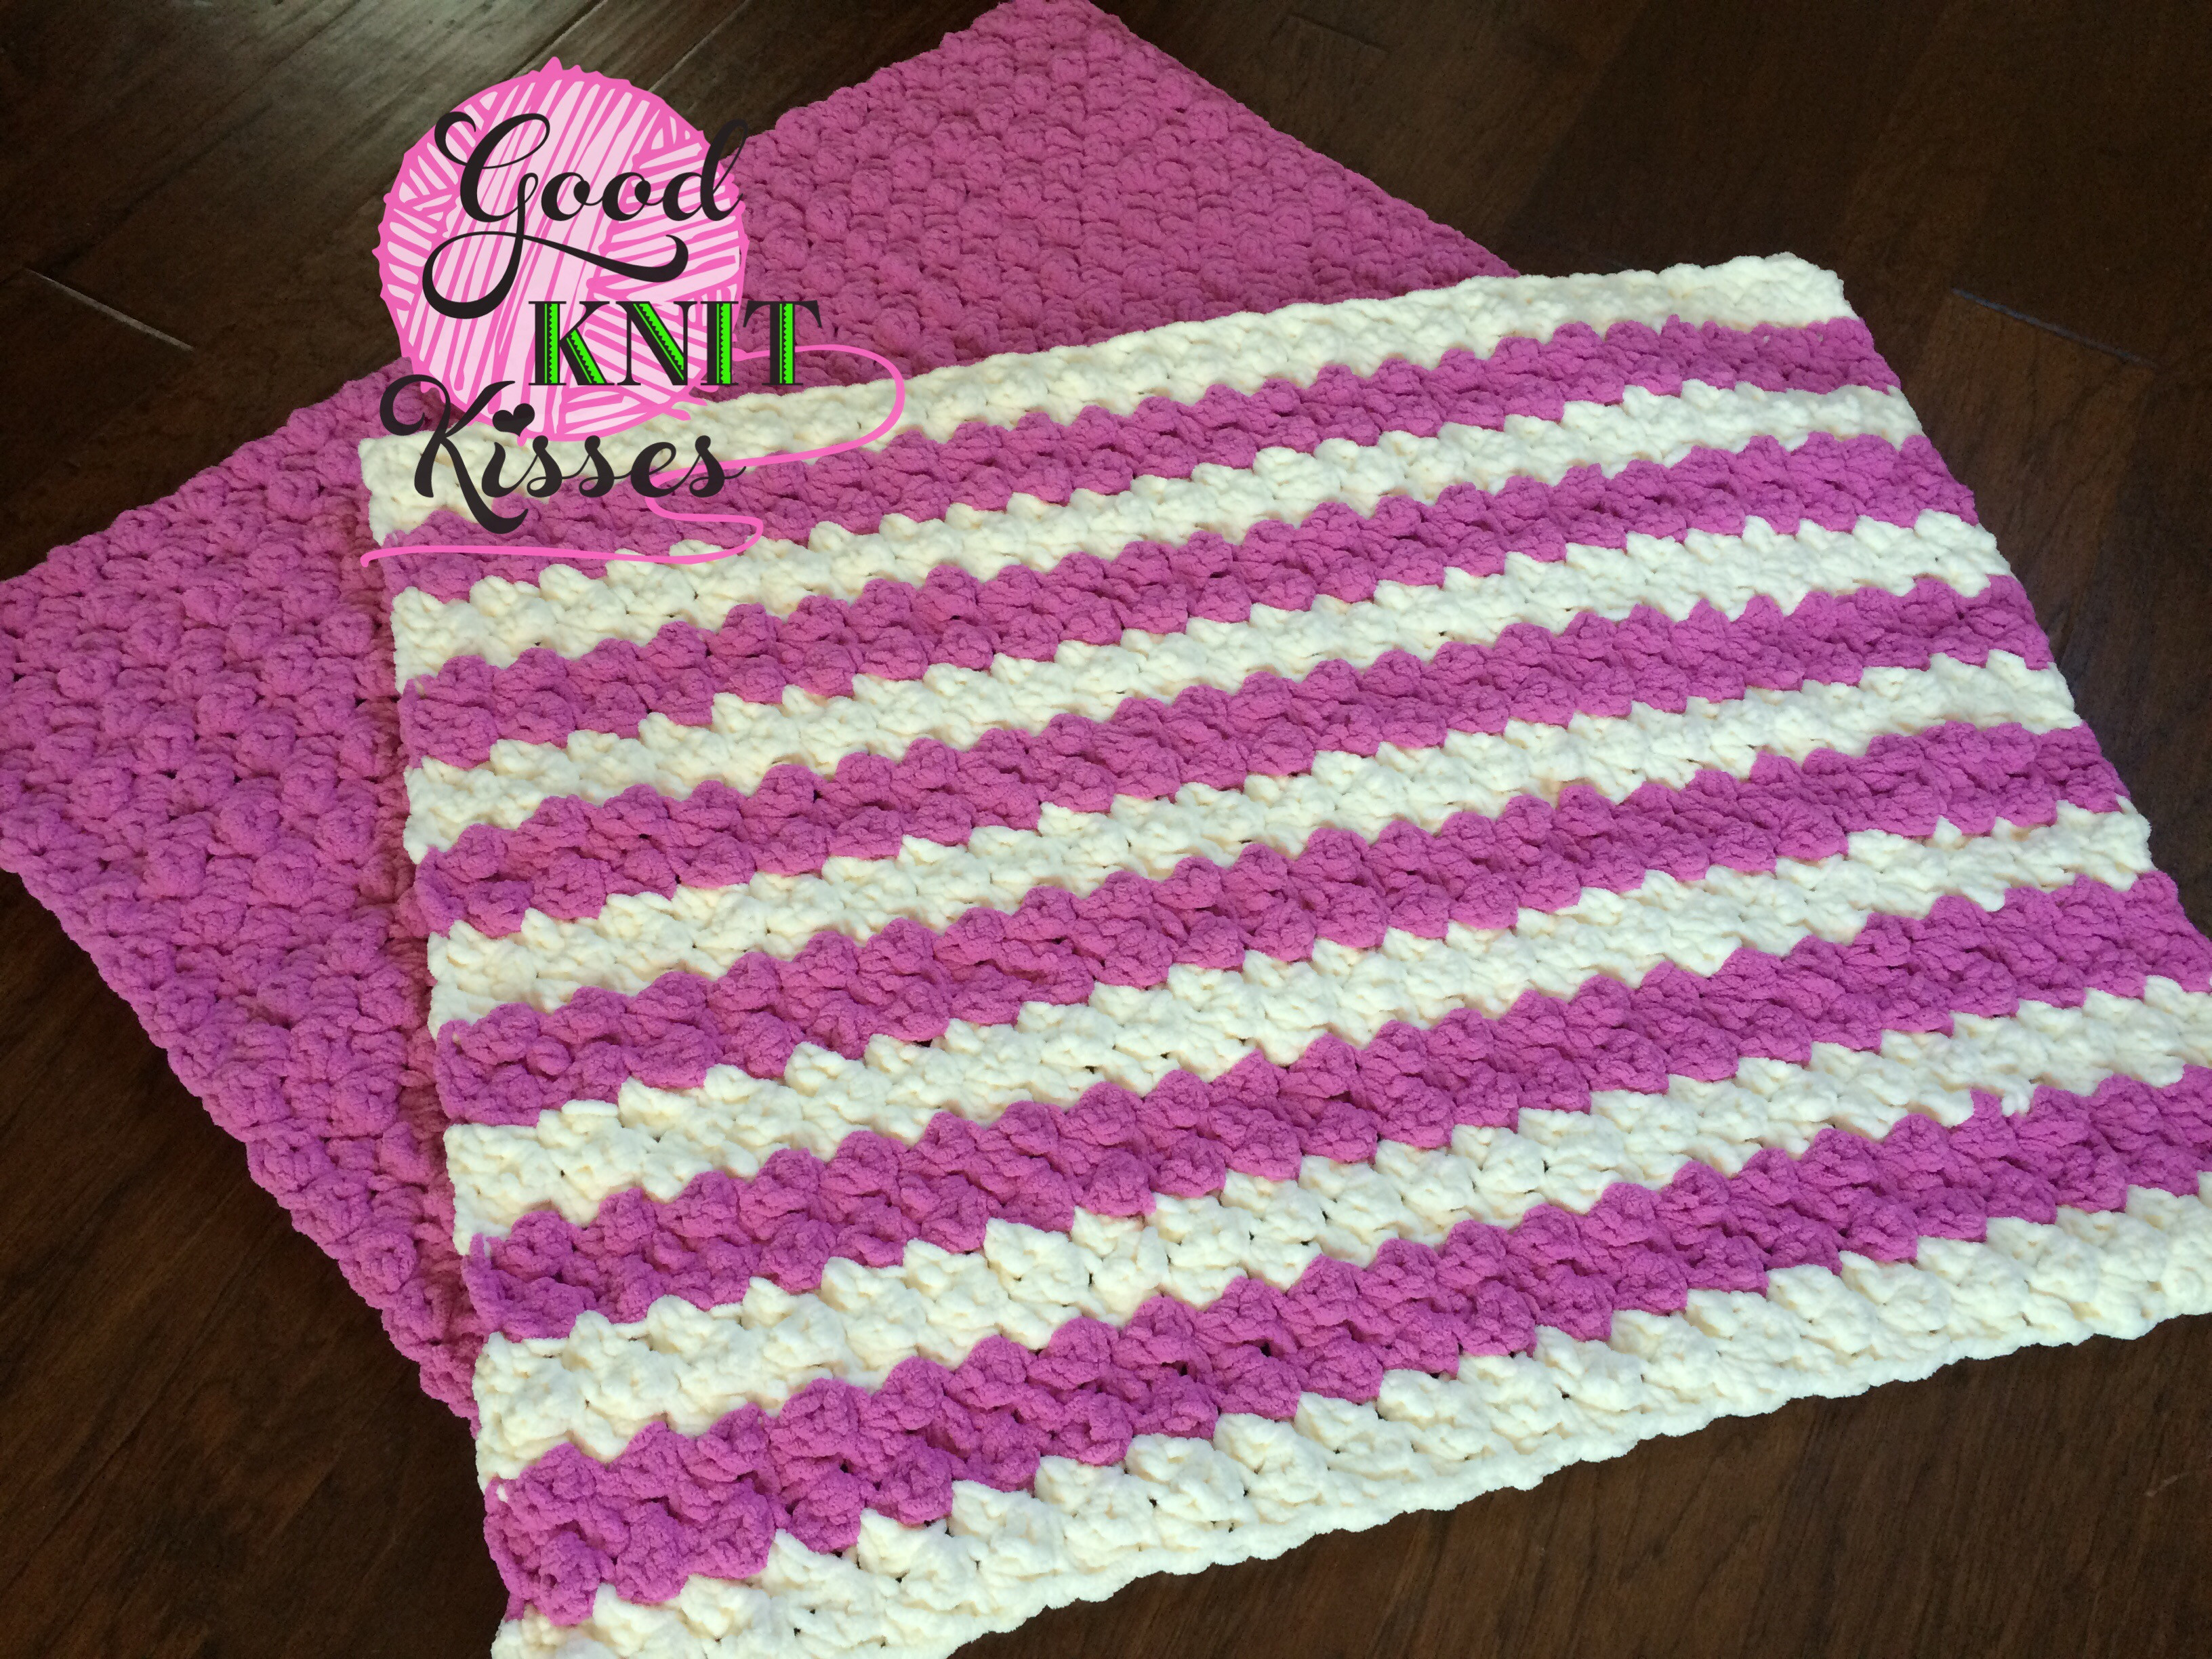 Marshmallow Crochet Baby Blanket GoodKnit Kisses